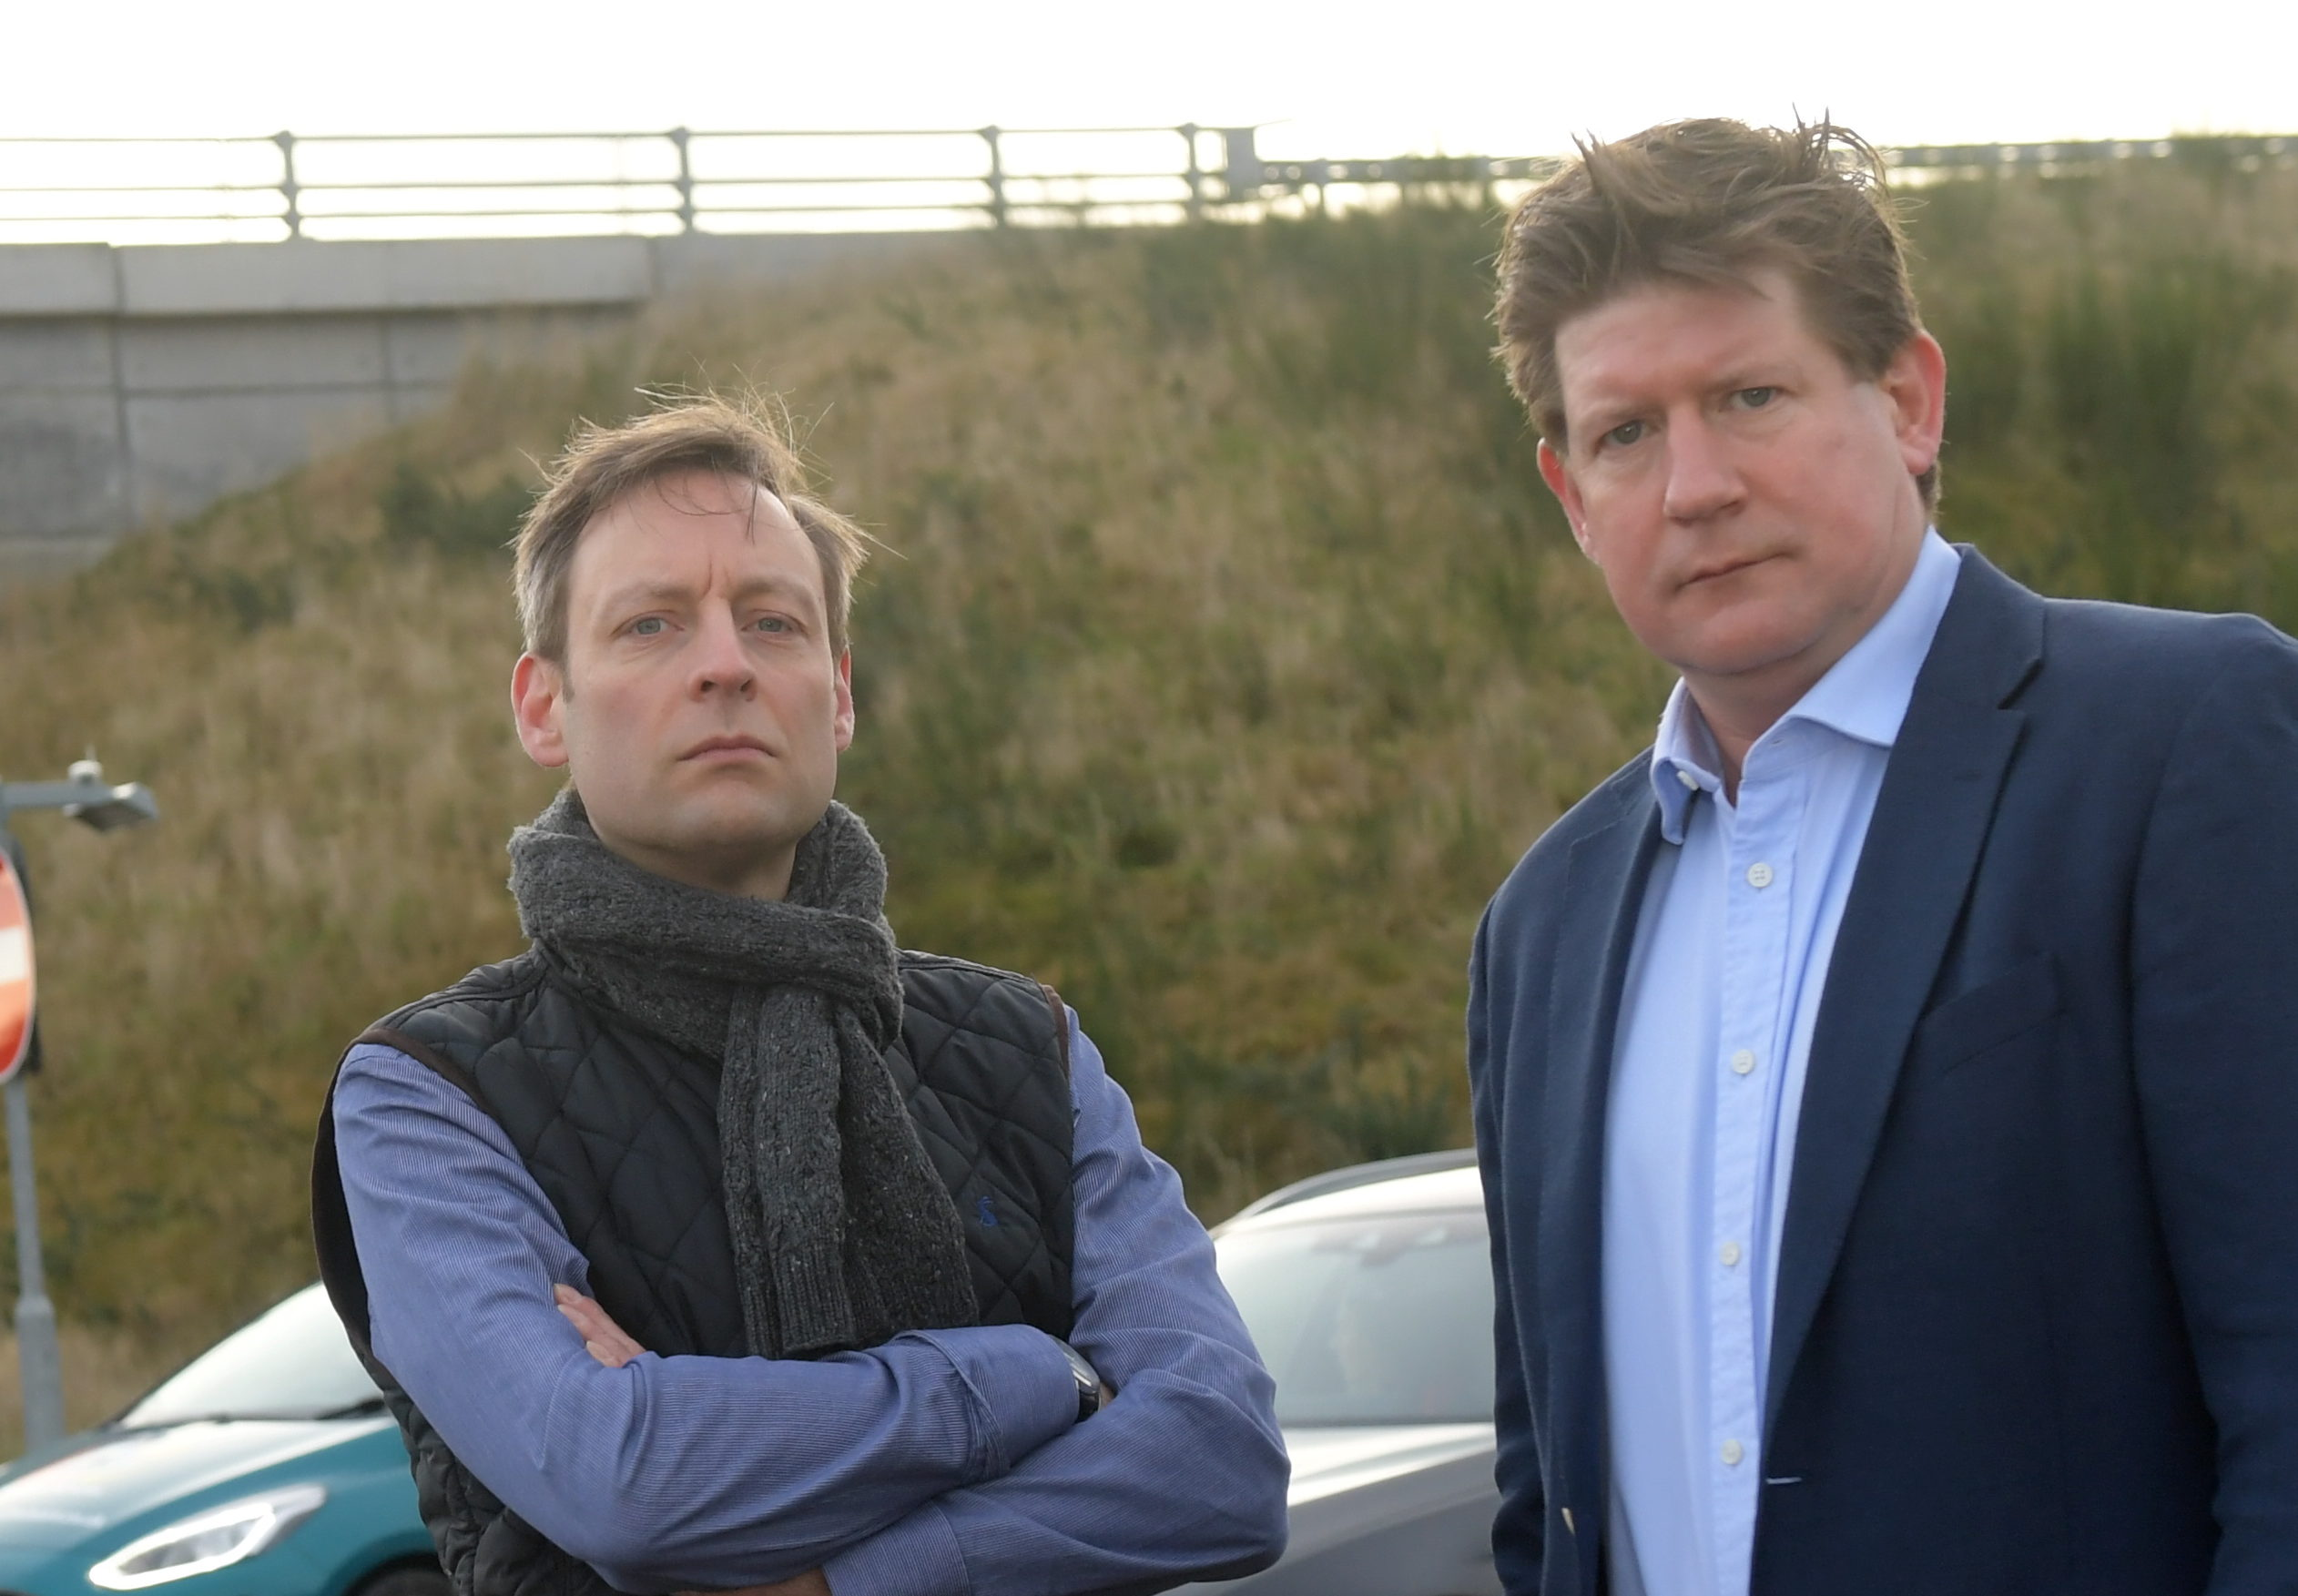 From left, Liam Kerr MSP and Alex Burnett MSP at the Kingswells South sliproad off the AWPR.  Picture by KATH FLANNERY